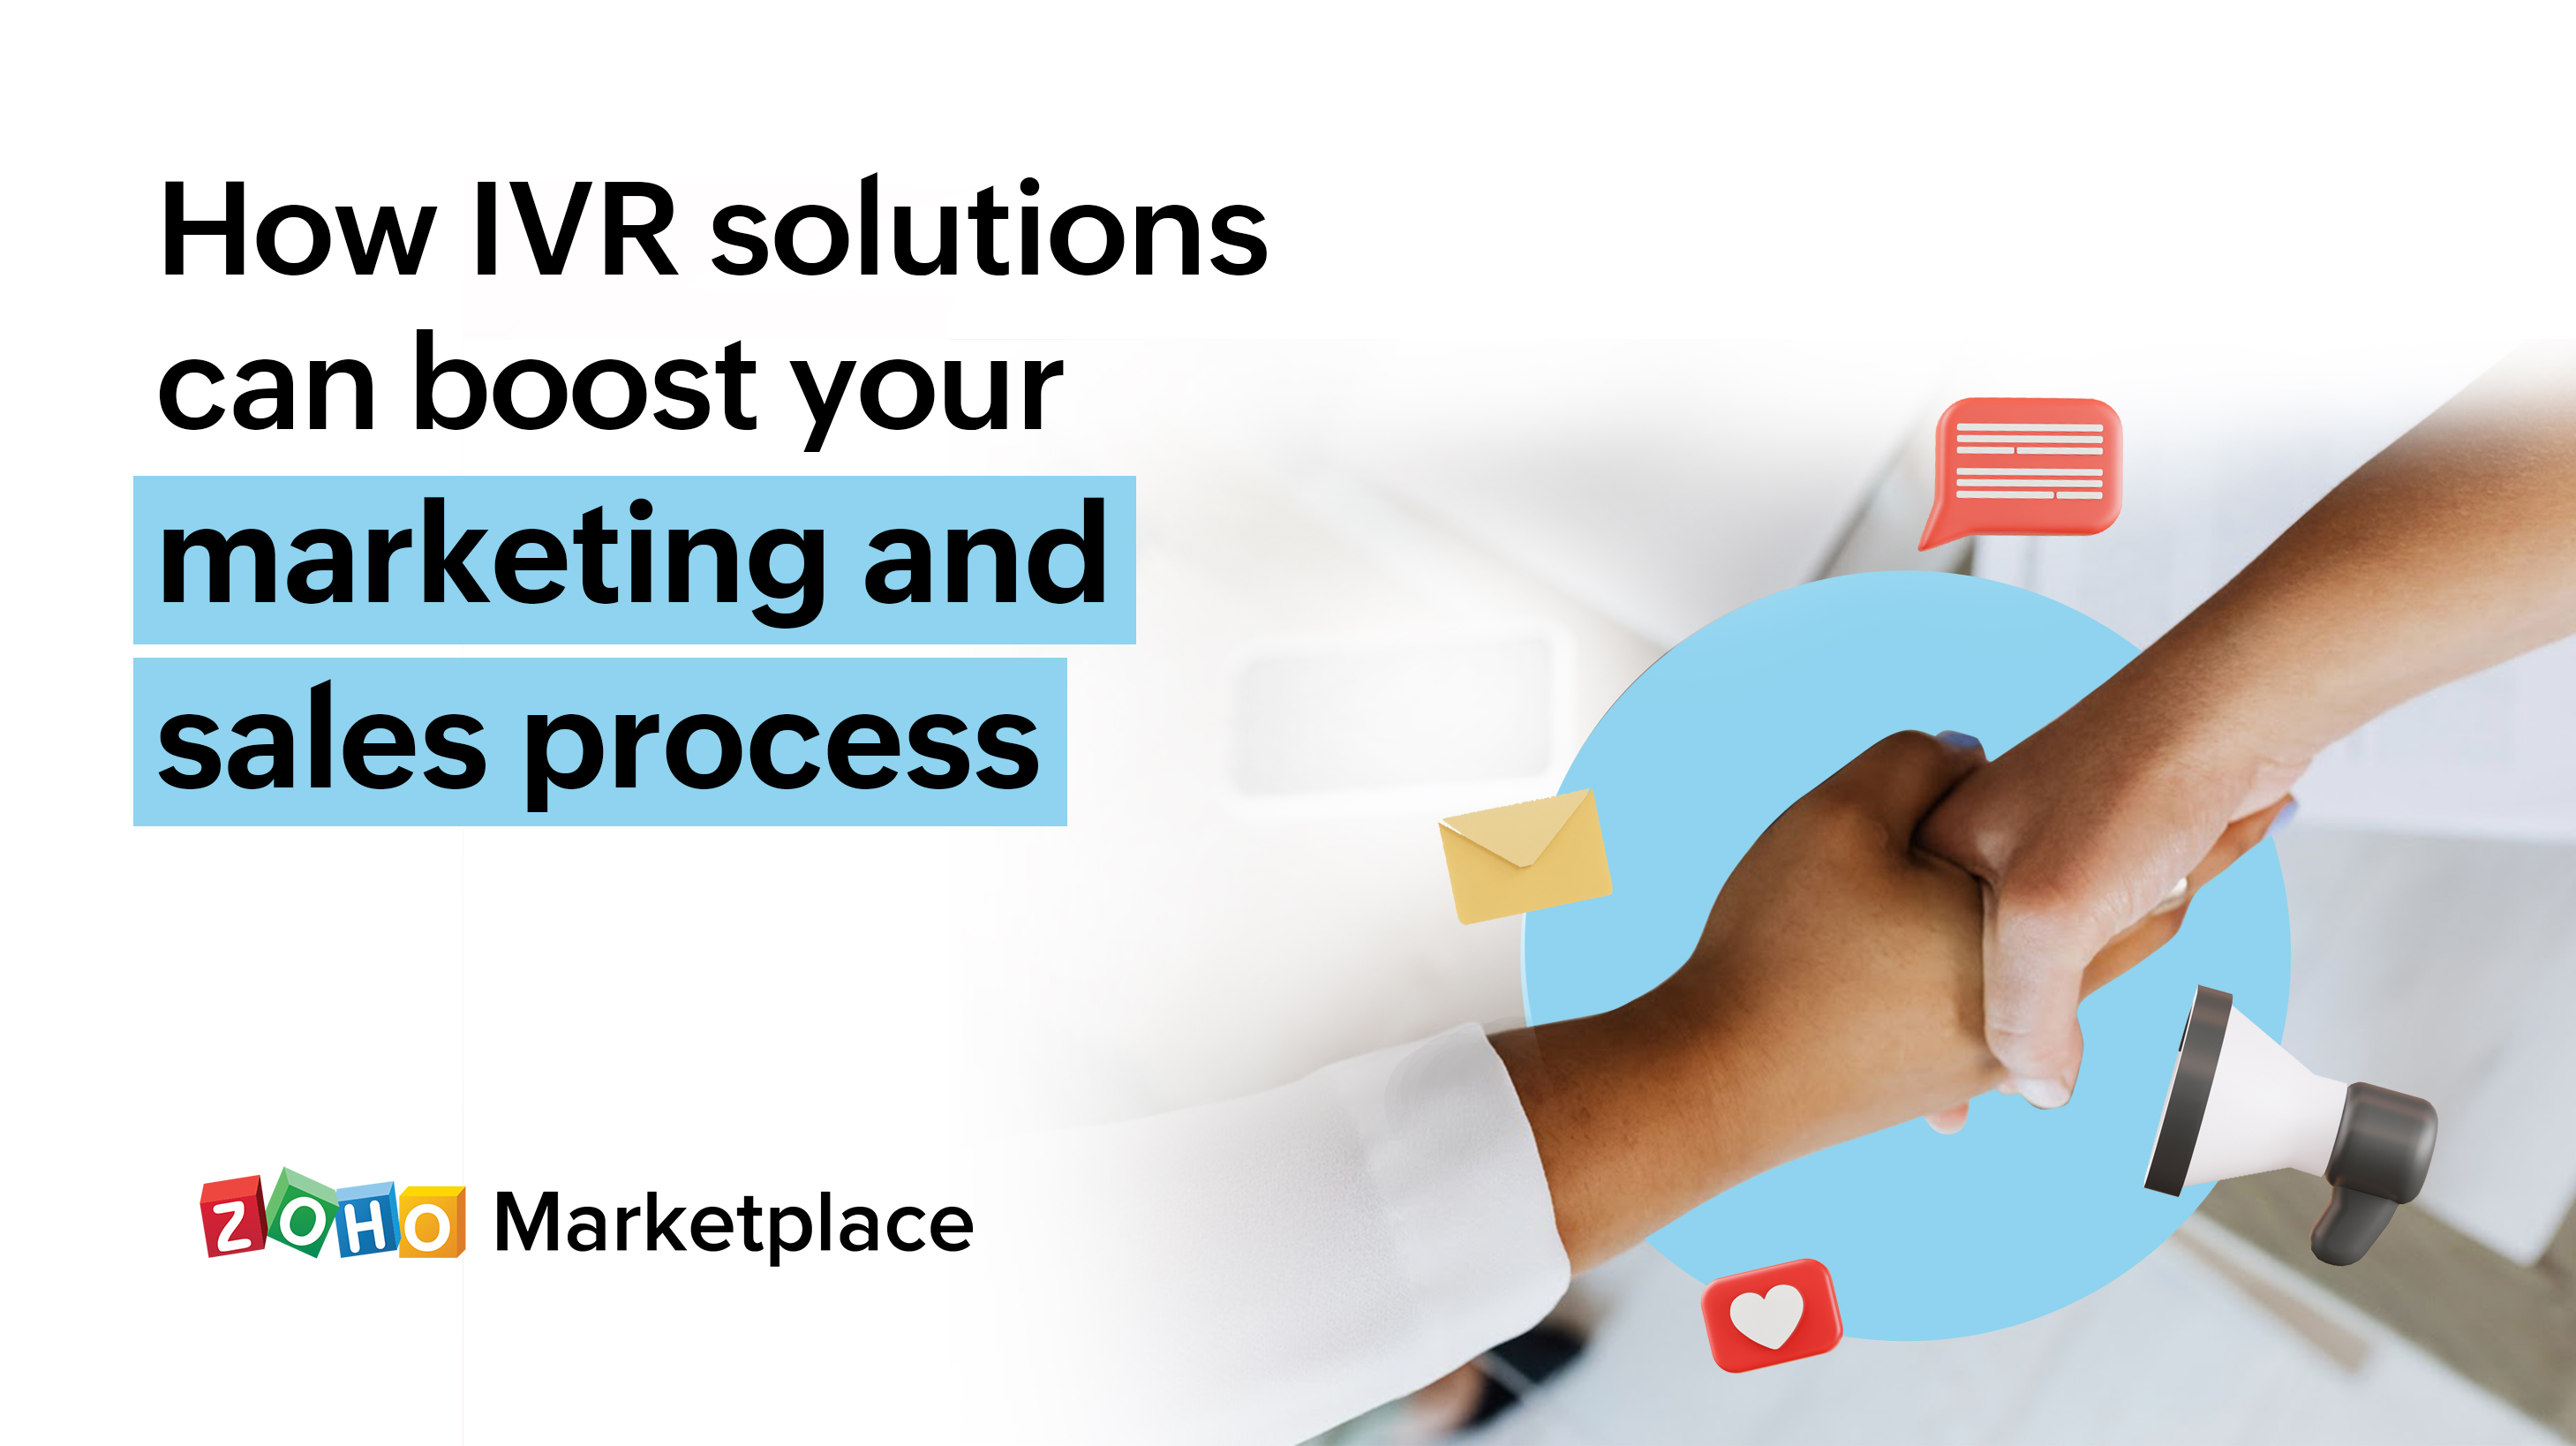 How IVR solutions can boost your marketing and sales process